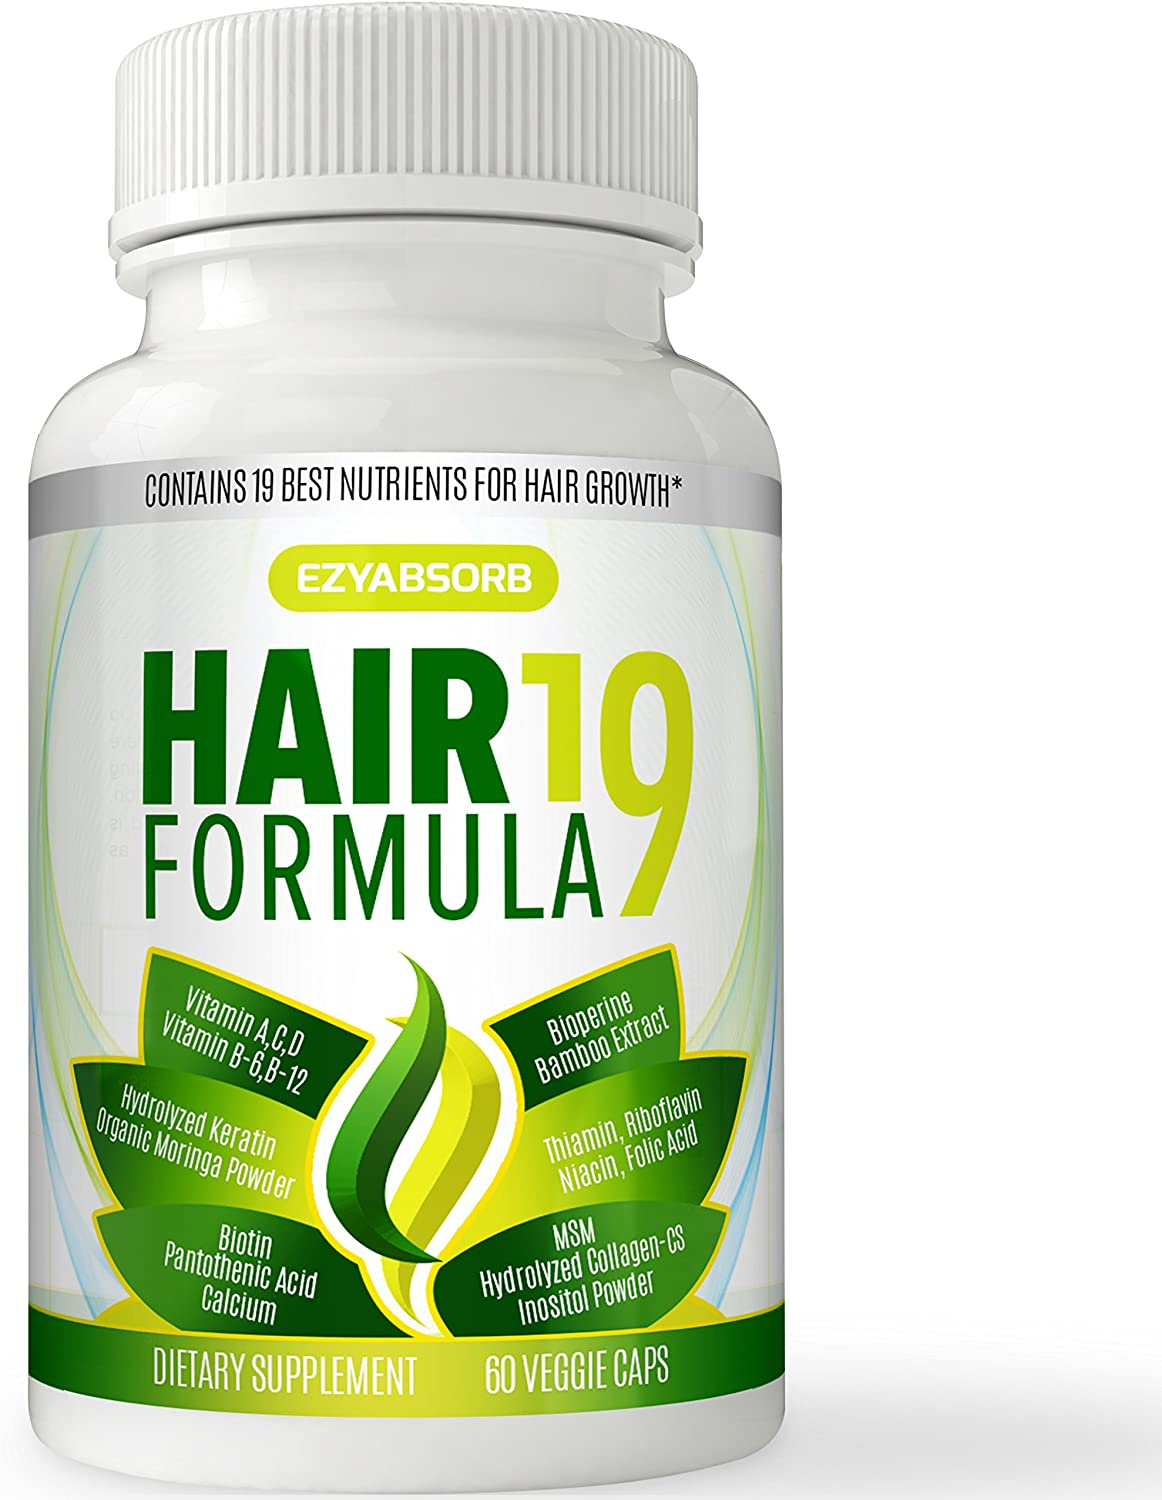 Amazon.com: EzyAbsorb Hair Vitamins - Scientifically Formulated to Nourish  Hair Follicles & Scalp for Thinning Hair, Faster New Hair Growth. Contains Hair  Growth Herbals for Longer, Stronger, Thicker Hair: Health & Personal